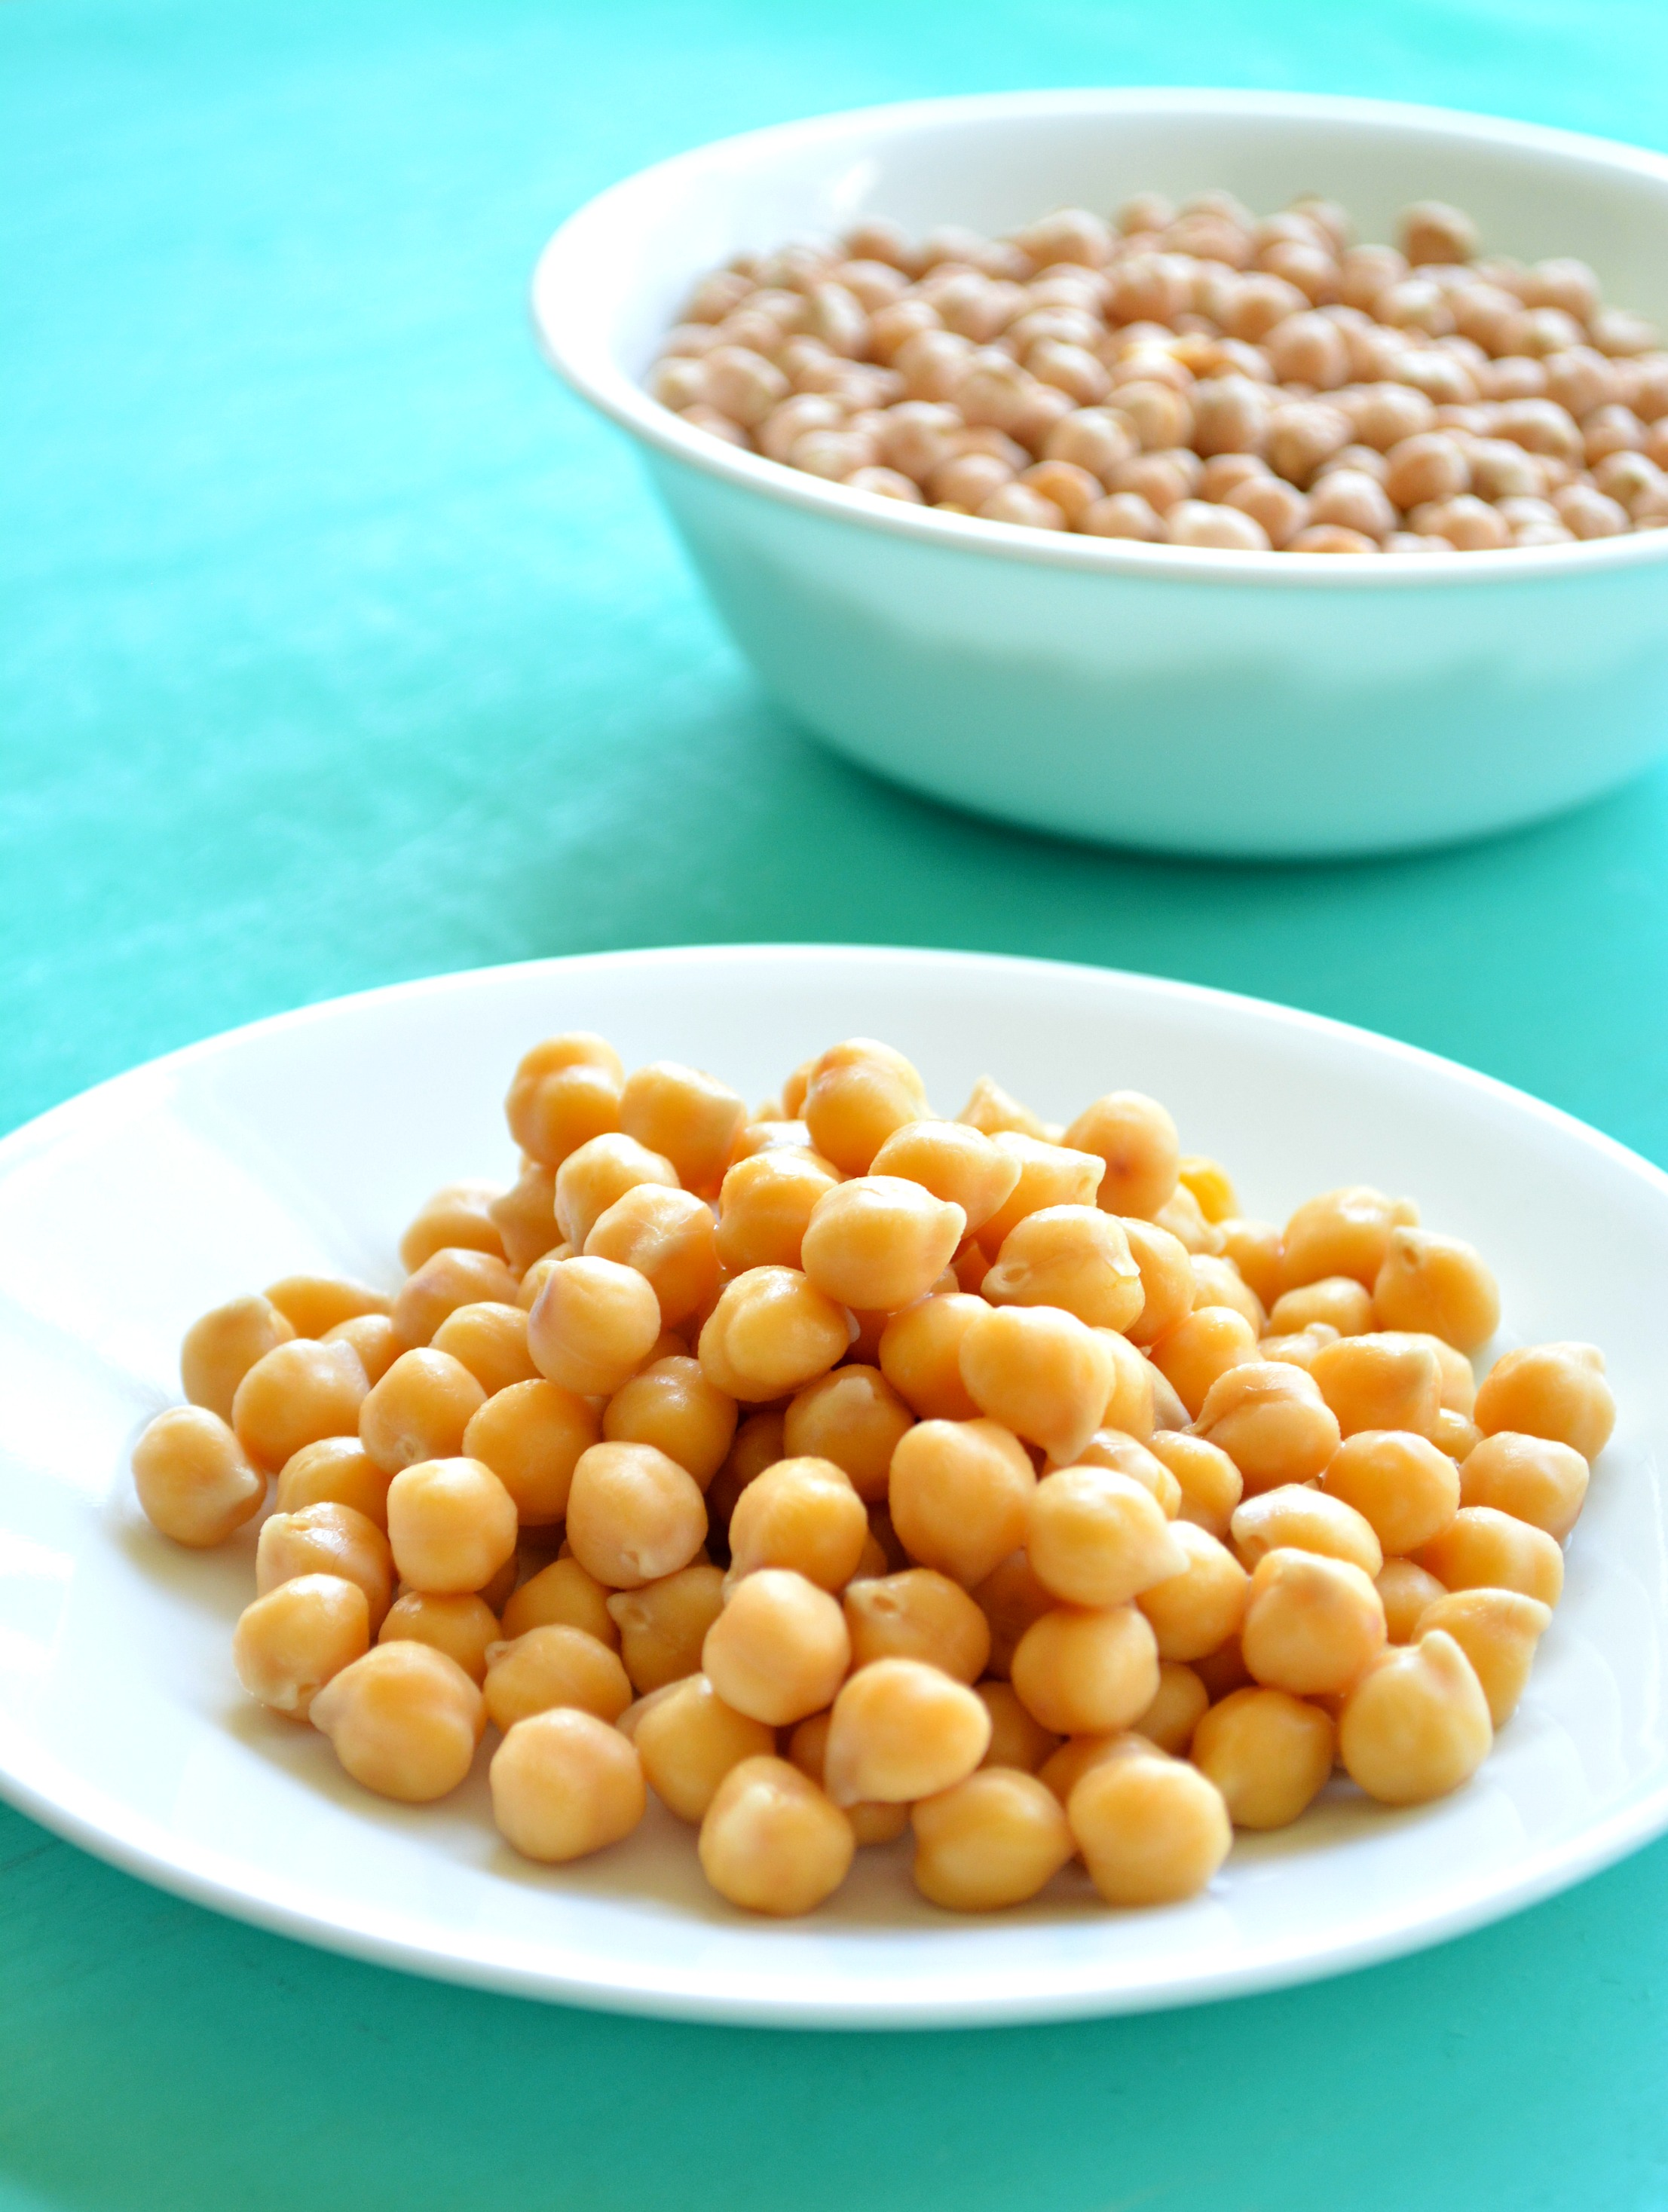 Forgot to soak chickpeas overnight? No problemo! - Love is ...